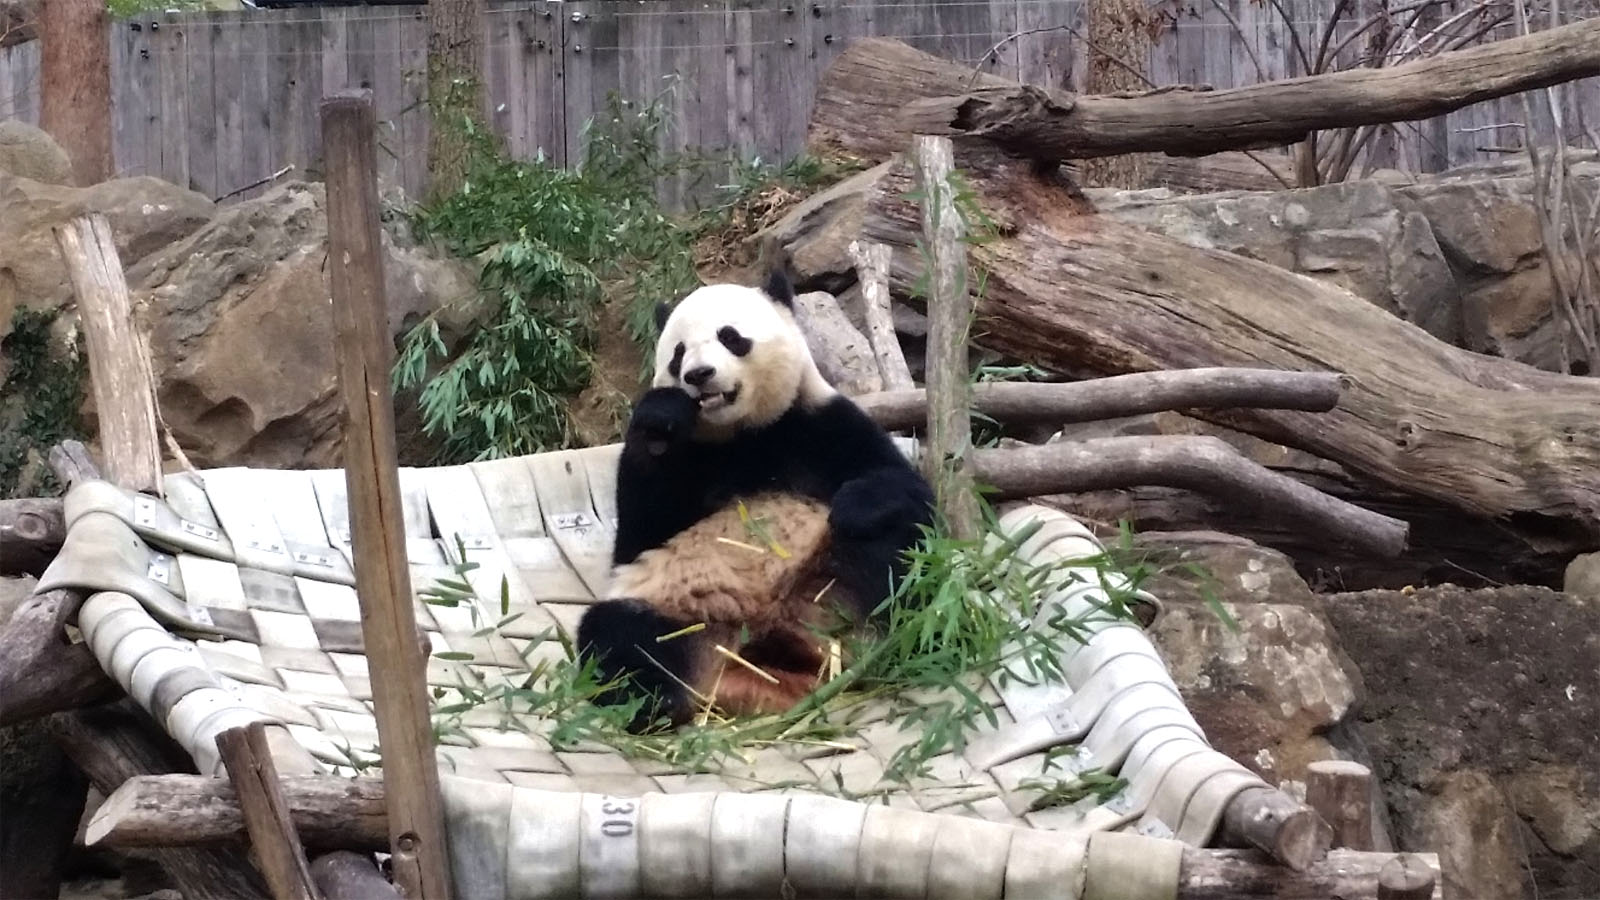 Pandas at the National Zoo are moved to China by the time they are four years old. Bao Bao will be turning four in August. (WTOP / Kathy Stewart)